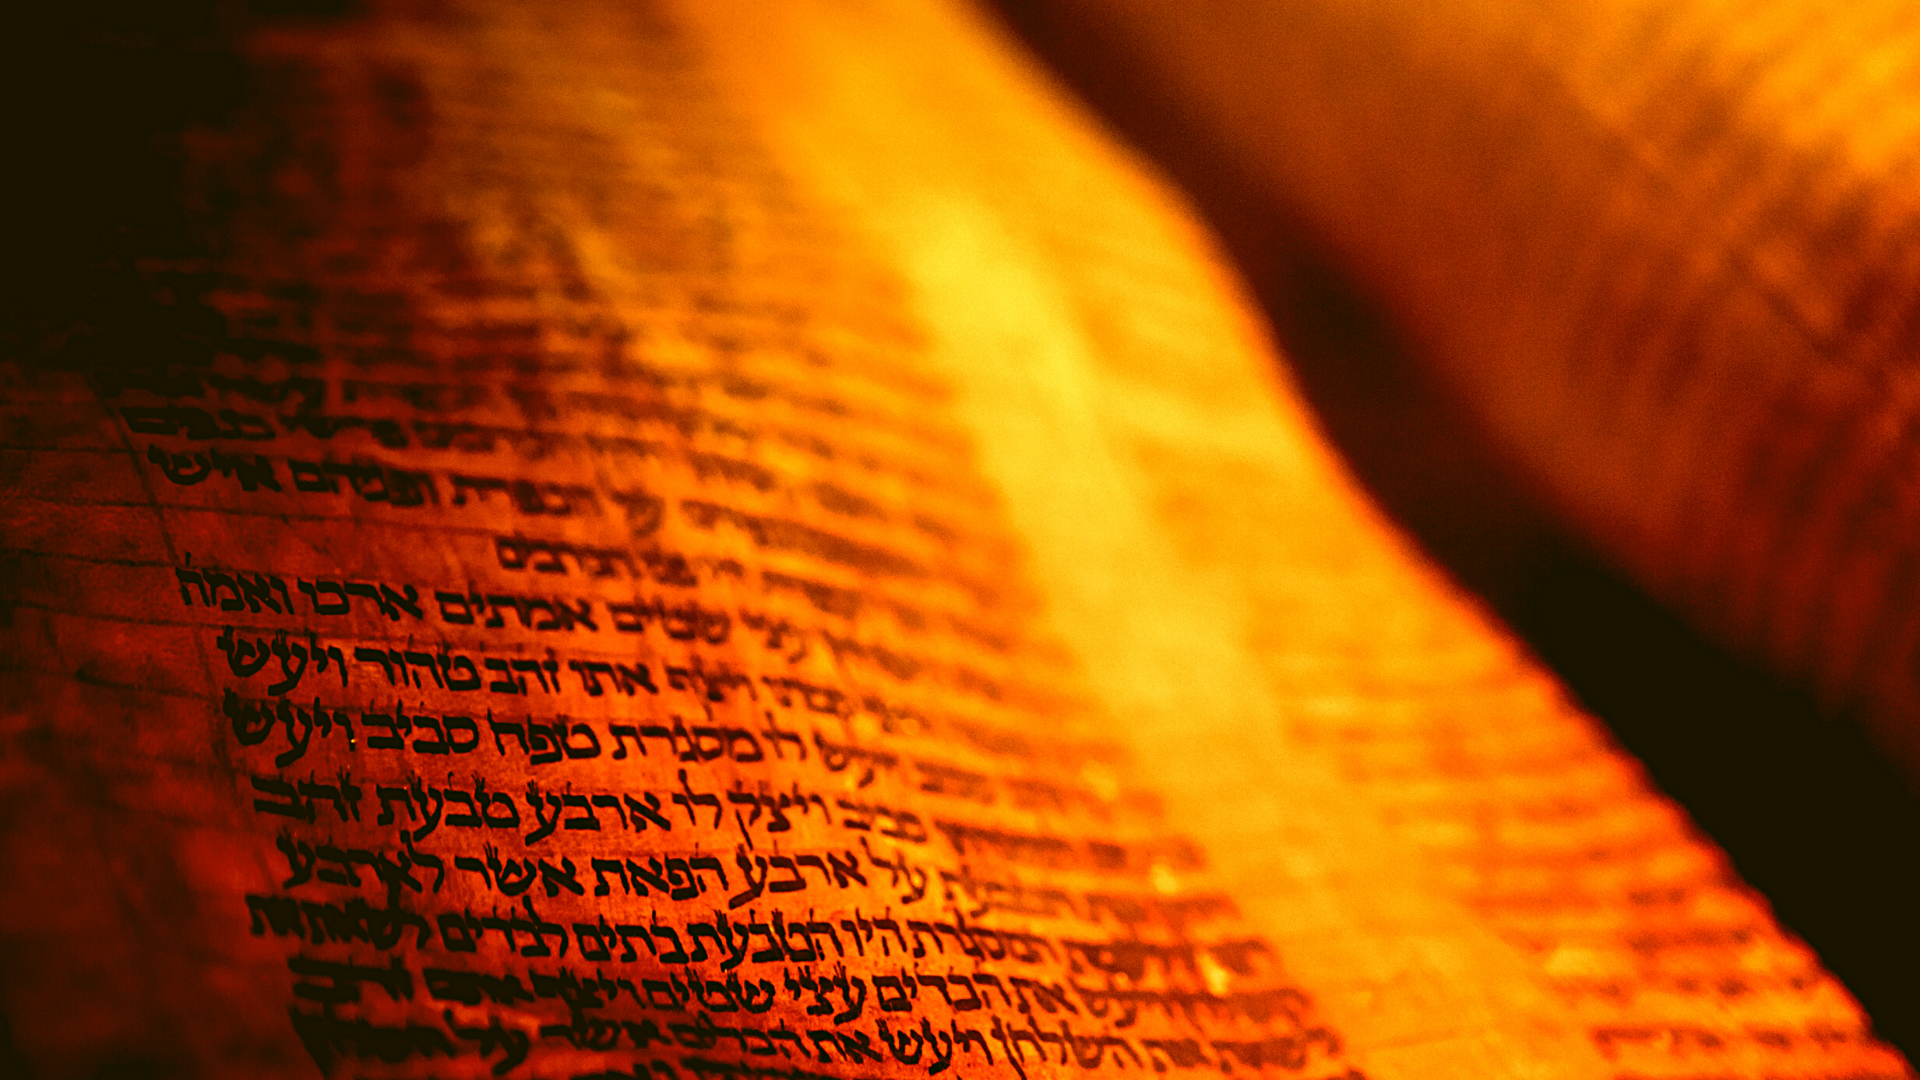 """<a href=""""https://www.betham.com/shavuot""""                                     target="""""""">                                                                 <span class=""""slider_title"""">                                     Shavuot Schedule                                </span>                                                                 </a>                                                                                                                                                                                       <span class=""""slider_description""""><p>May 16th - May 18th</p> Shavuot commemorates the anniversary of the day God gave the Torah to the entire Israelite nation assembled at Mount Sinai</span>                                                                                     <a href=""""https://www.betham.com/shavuot"""" class=""""slider_link""""                             target="""""""">                             Click here for more info                            </a>"""